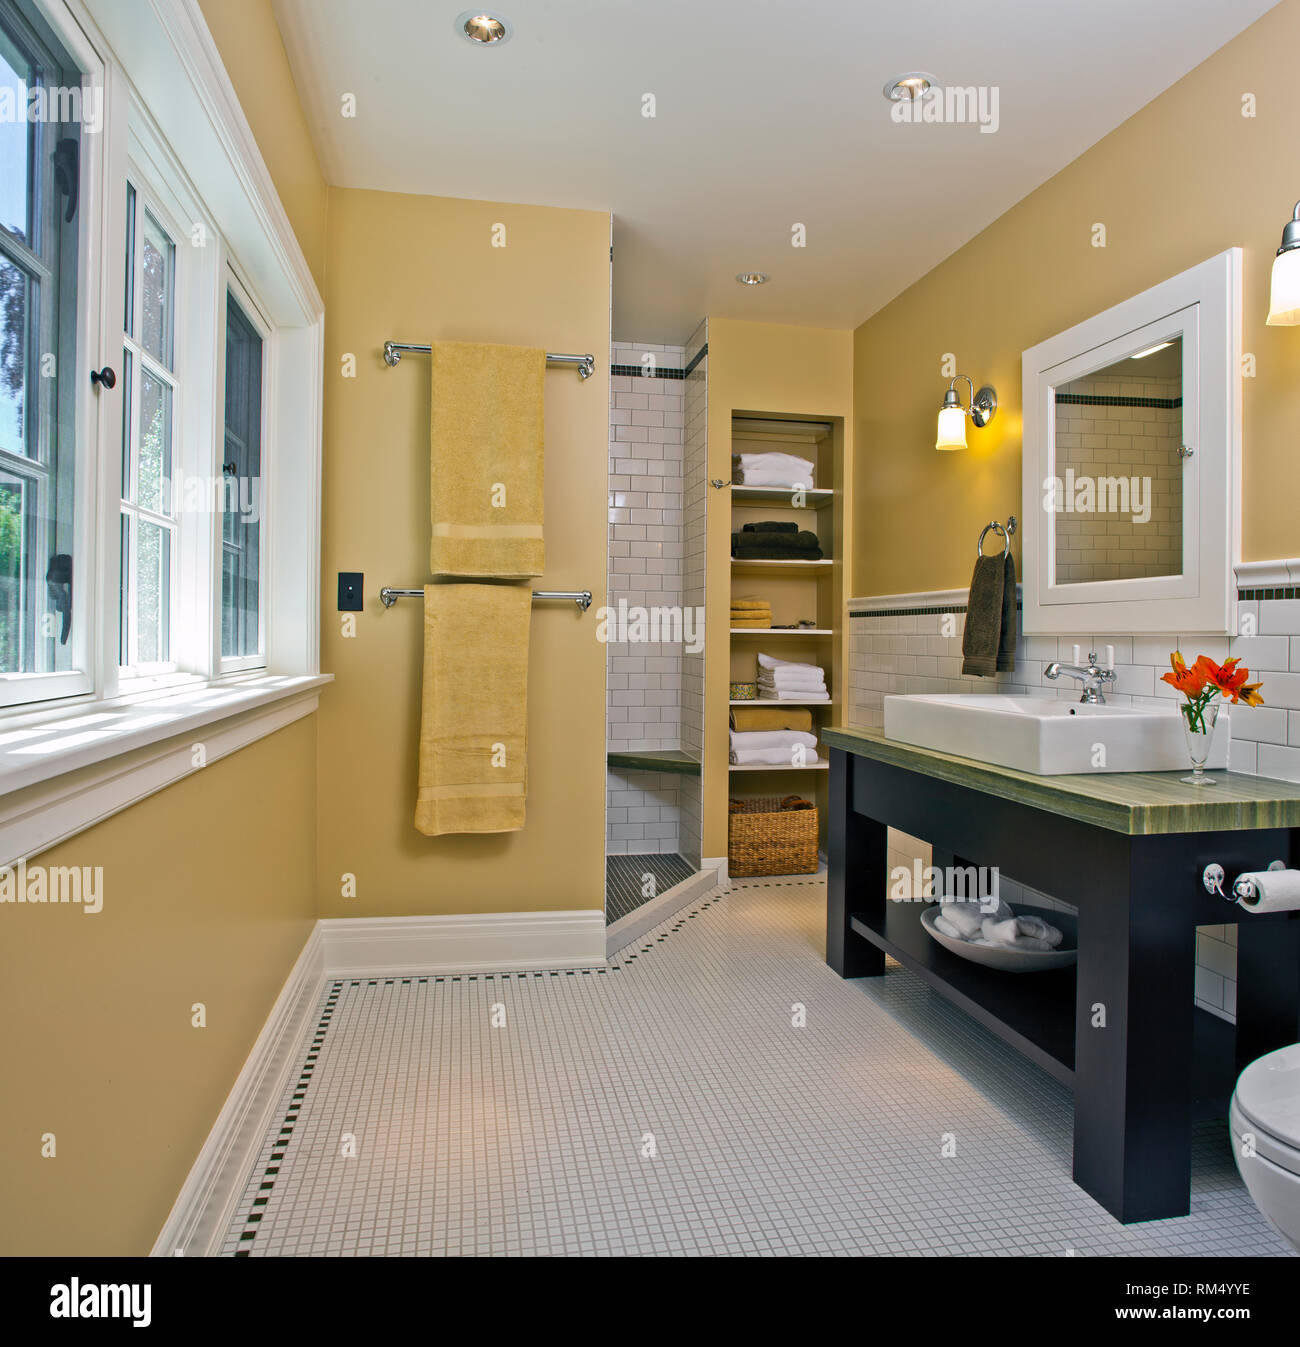 Modern Contemporary Bathroom with washbasin and shower room - Stock Image